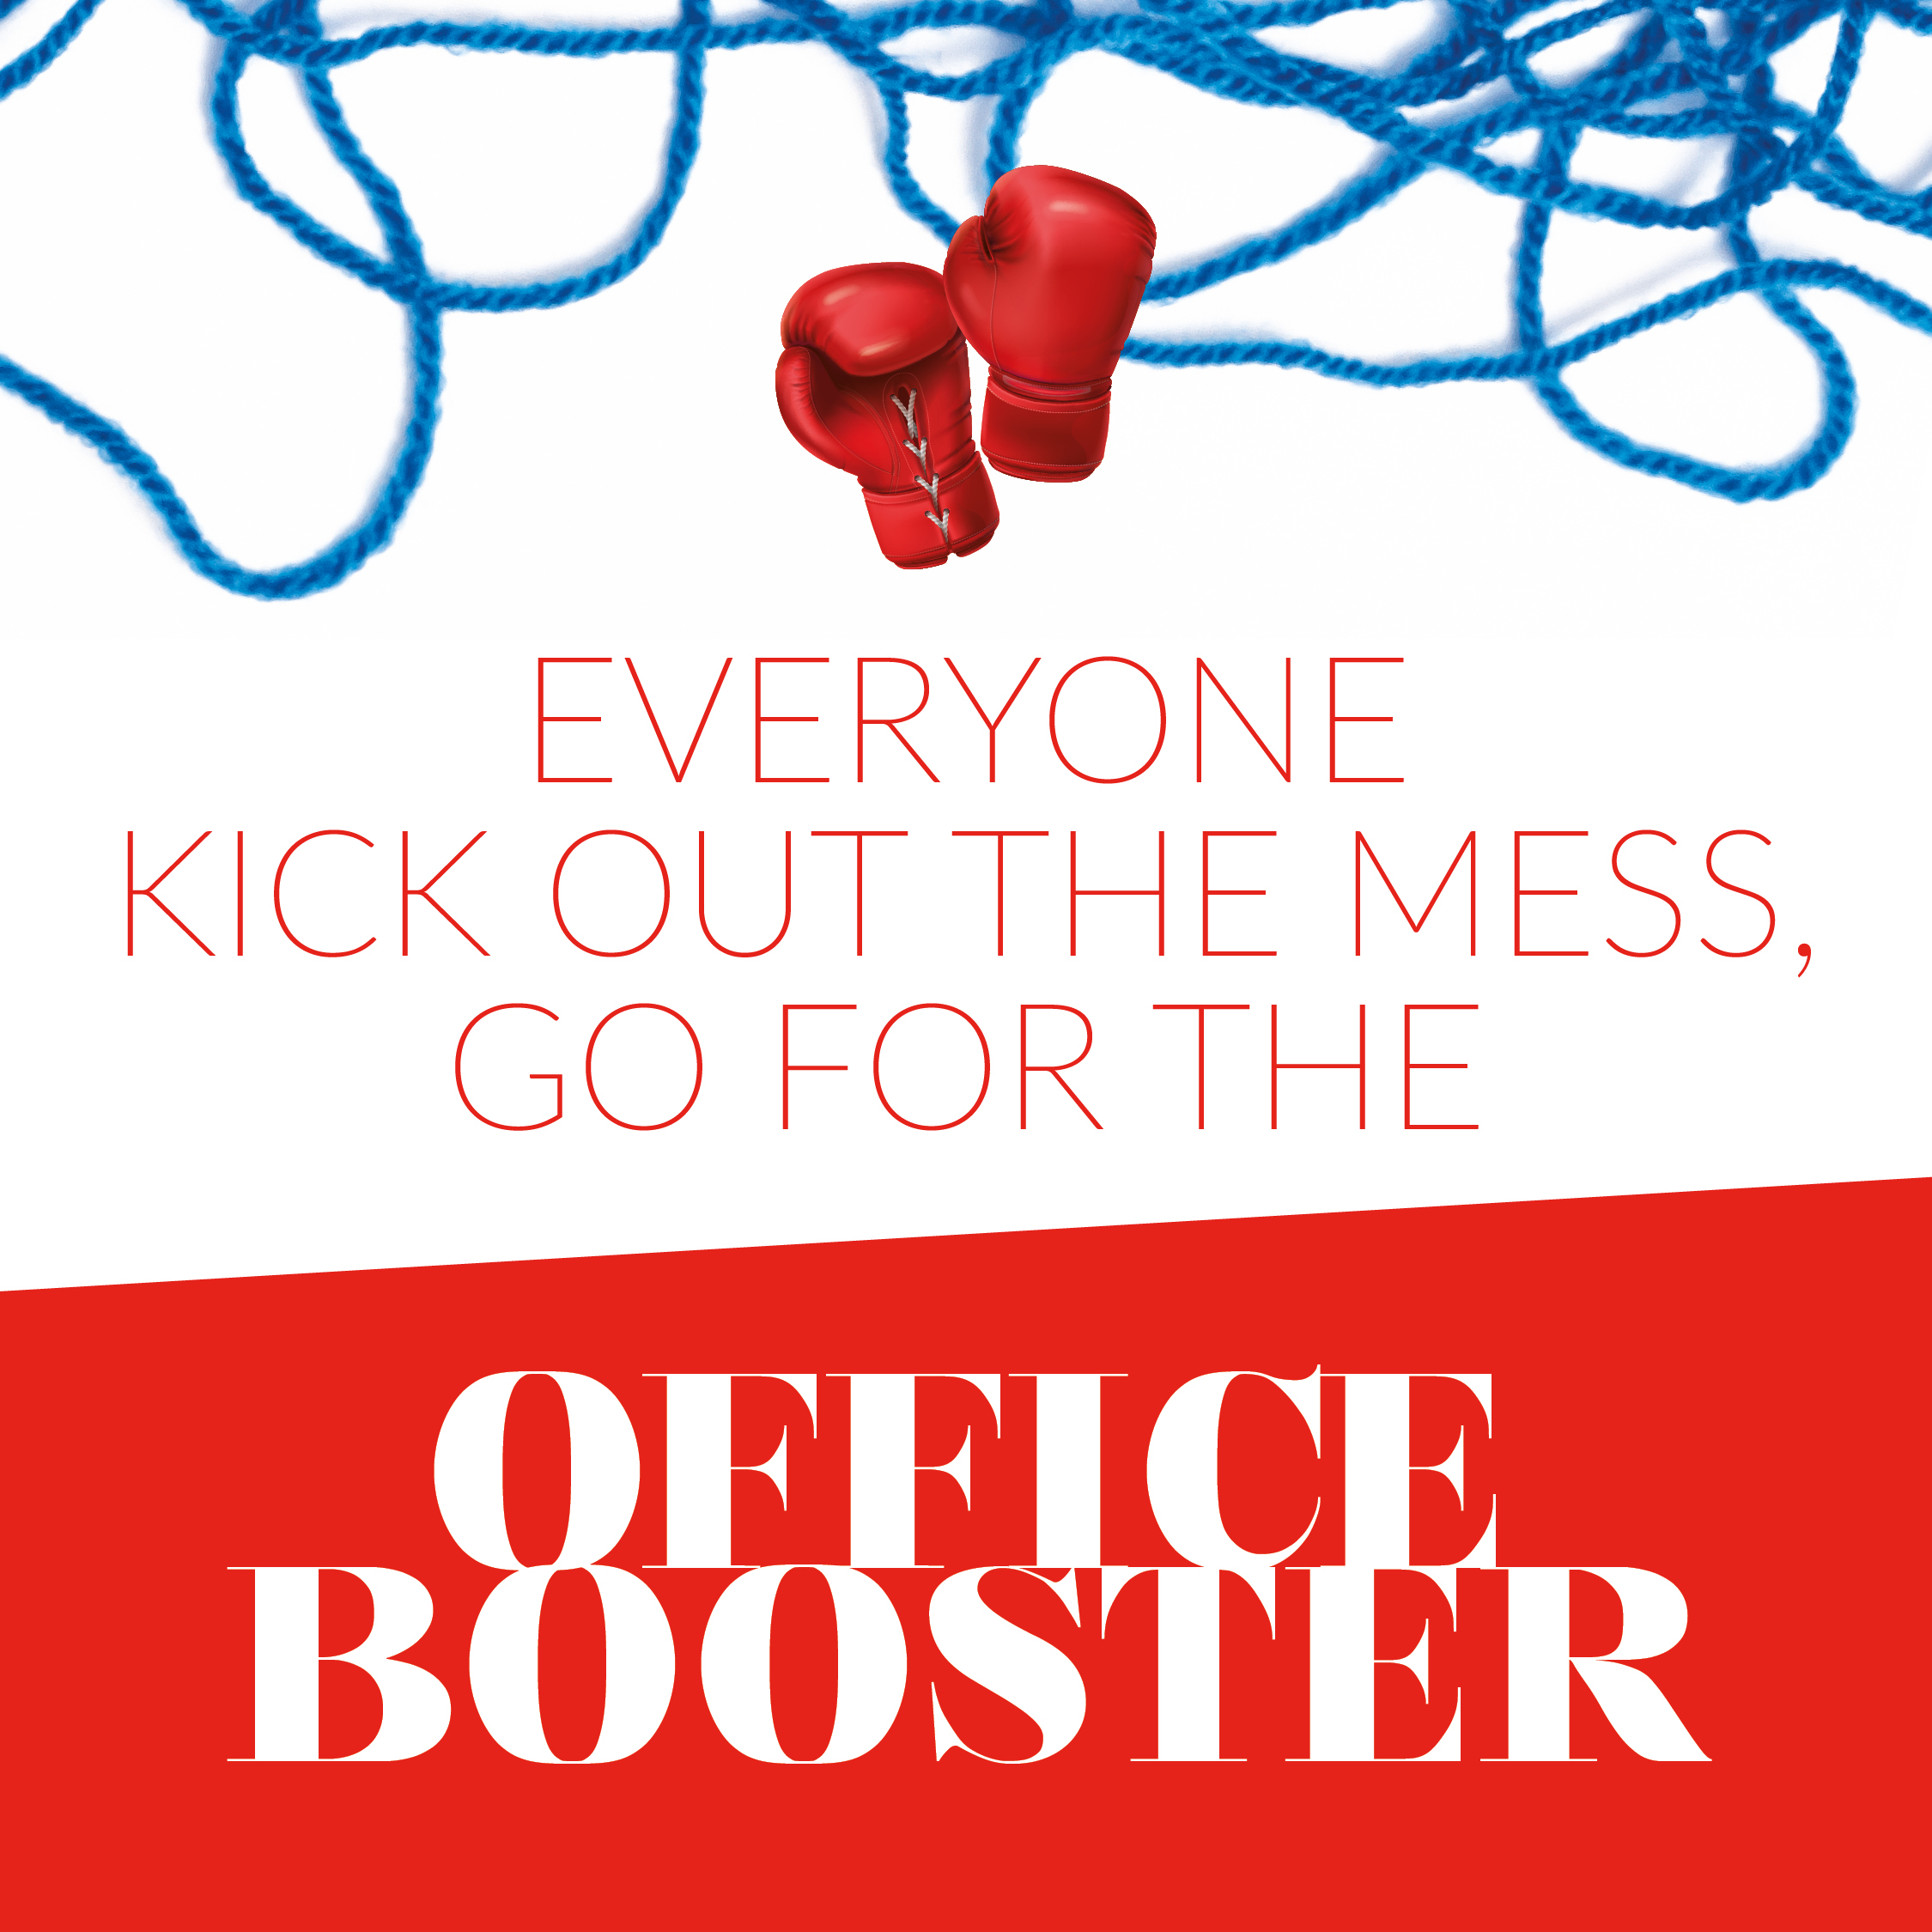 Office Booster - kick out the mess